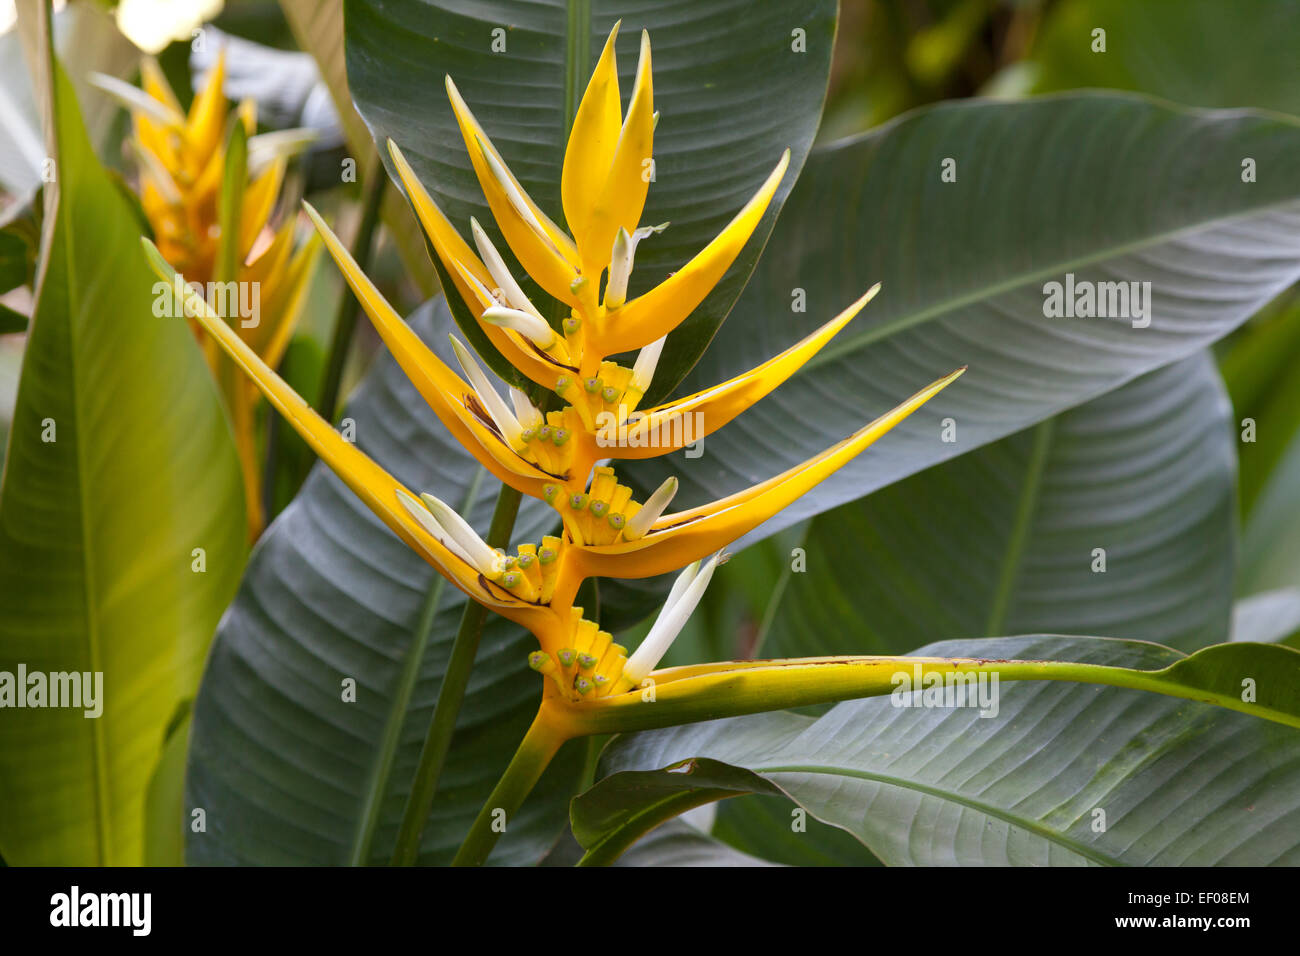 Heliconia yellow holiday outdoors - Stock Image